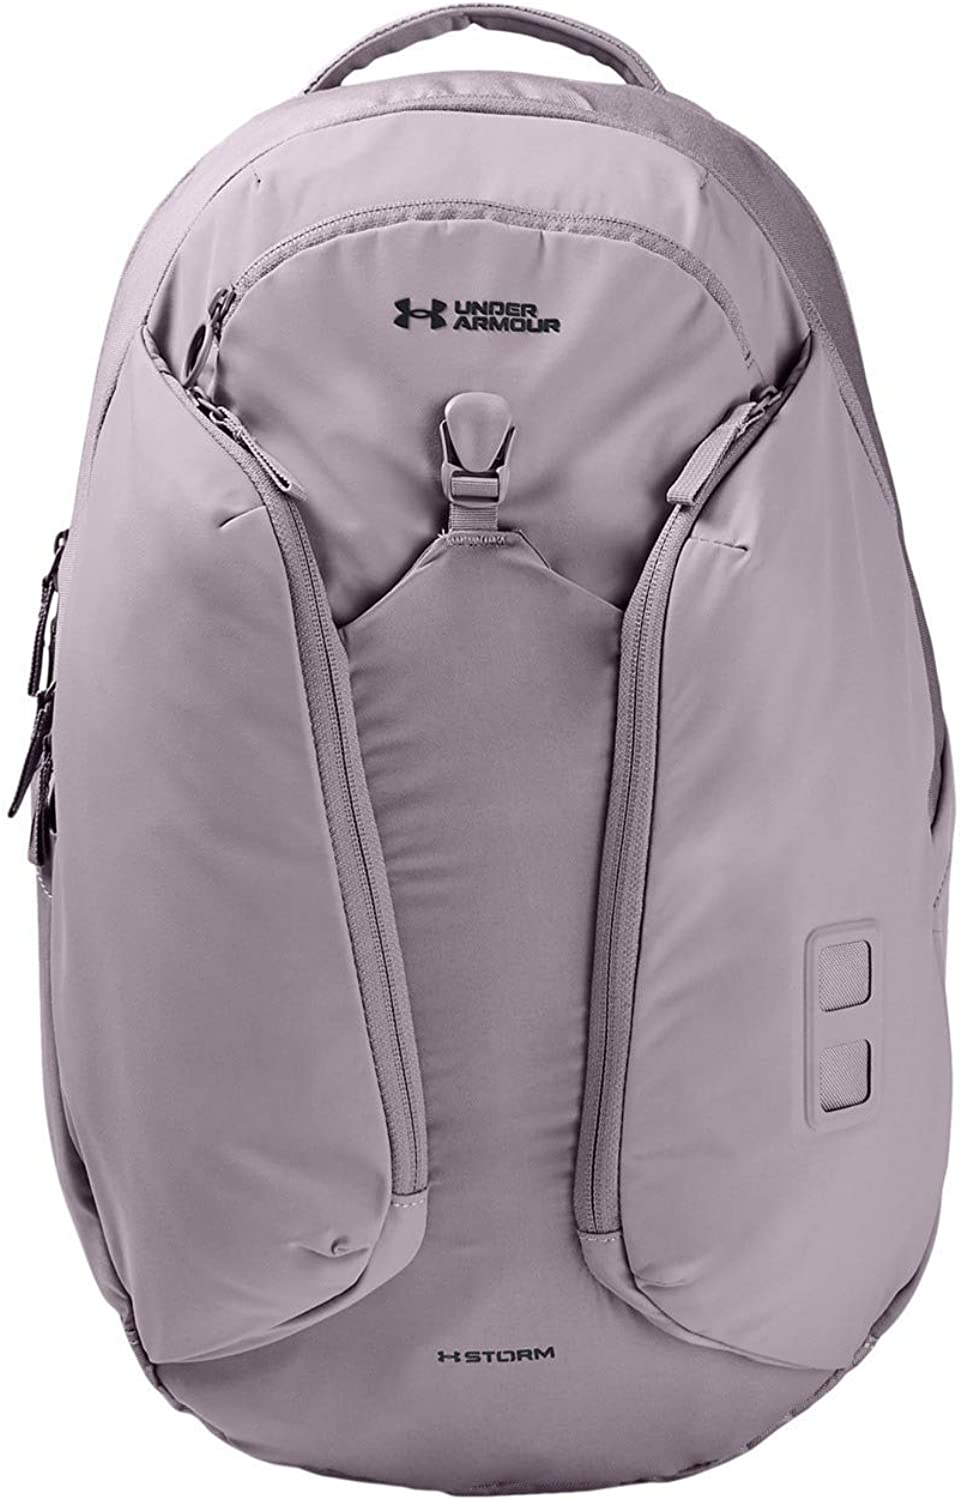 Under Armour Men's Contender 2.0 Backpack